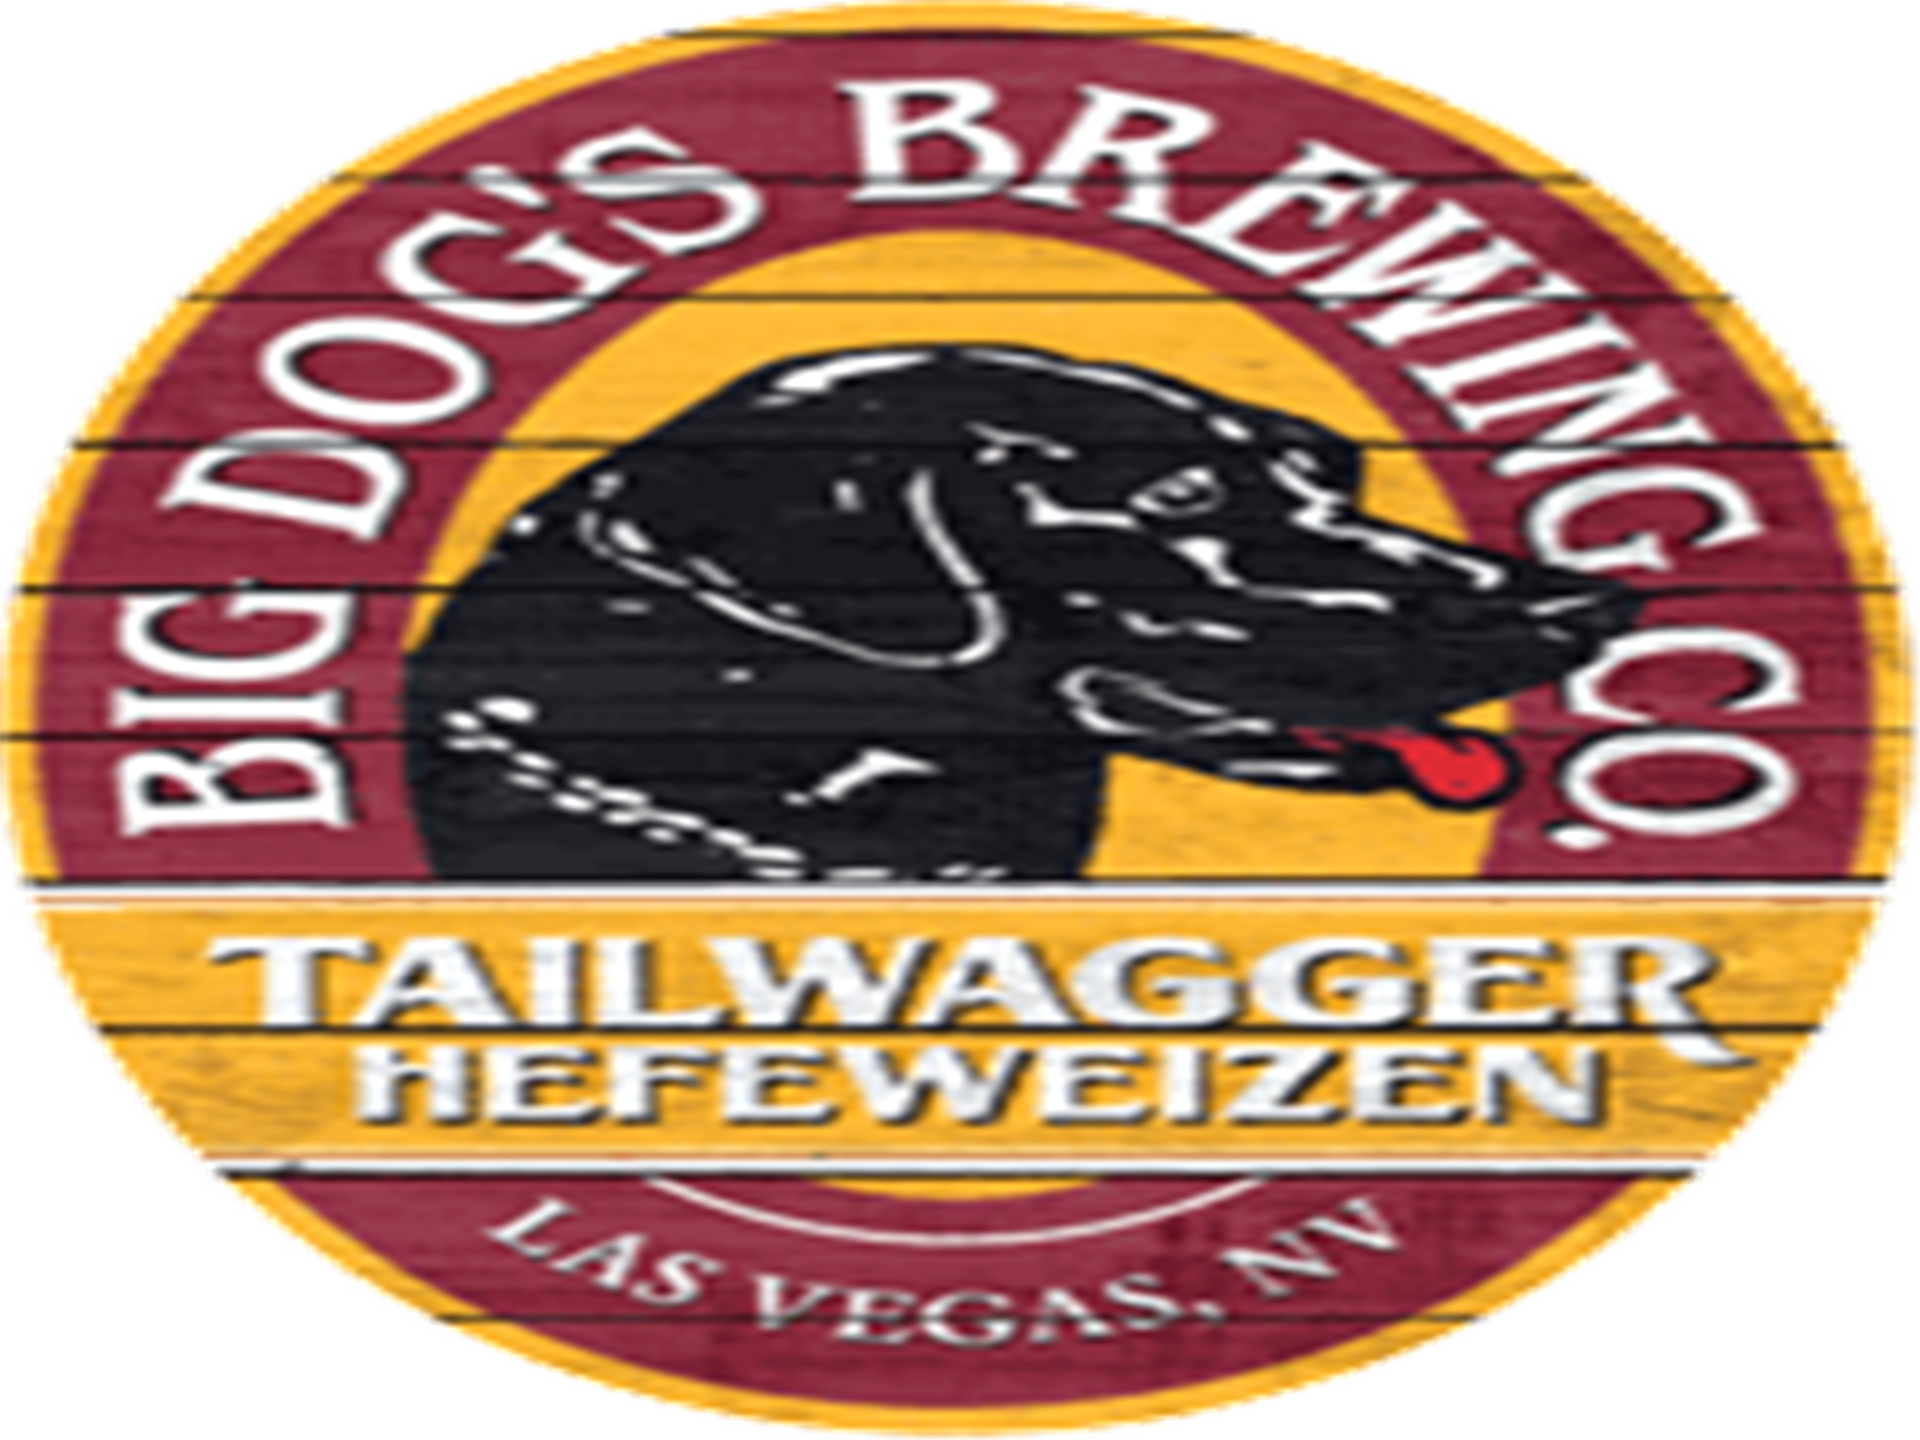 Big Dog's Brewing Company Tailwagger Hefeweizer Las Vegas, NV